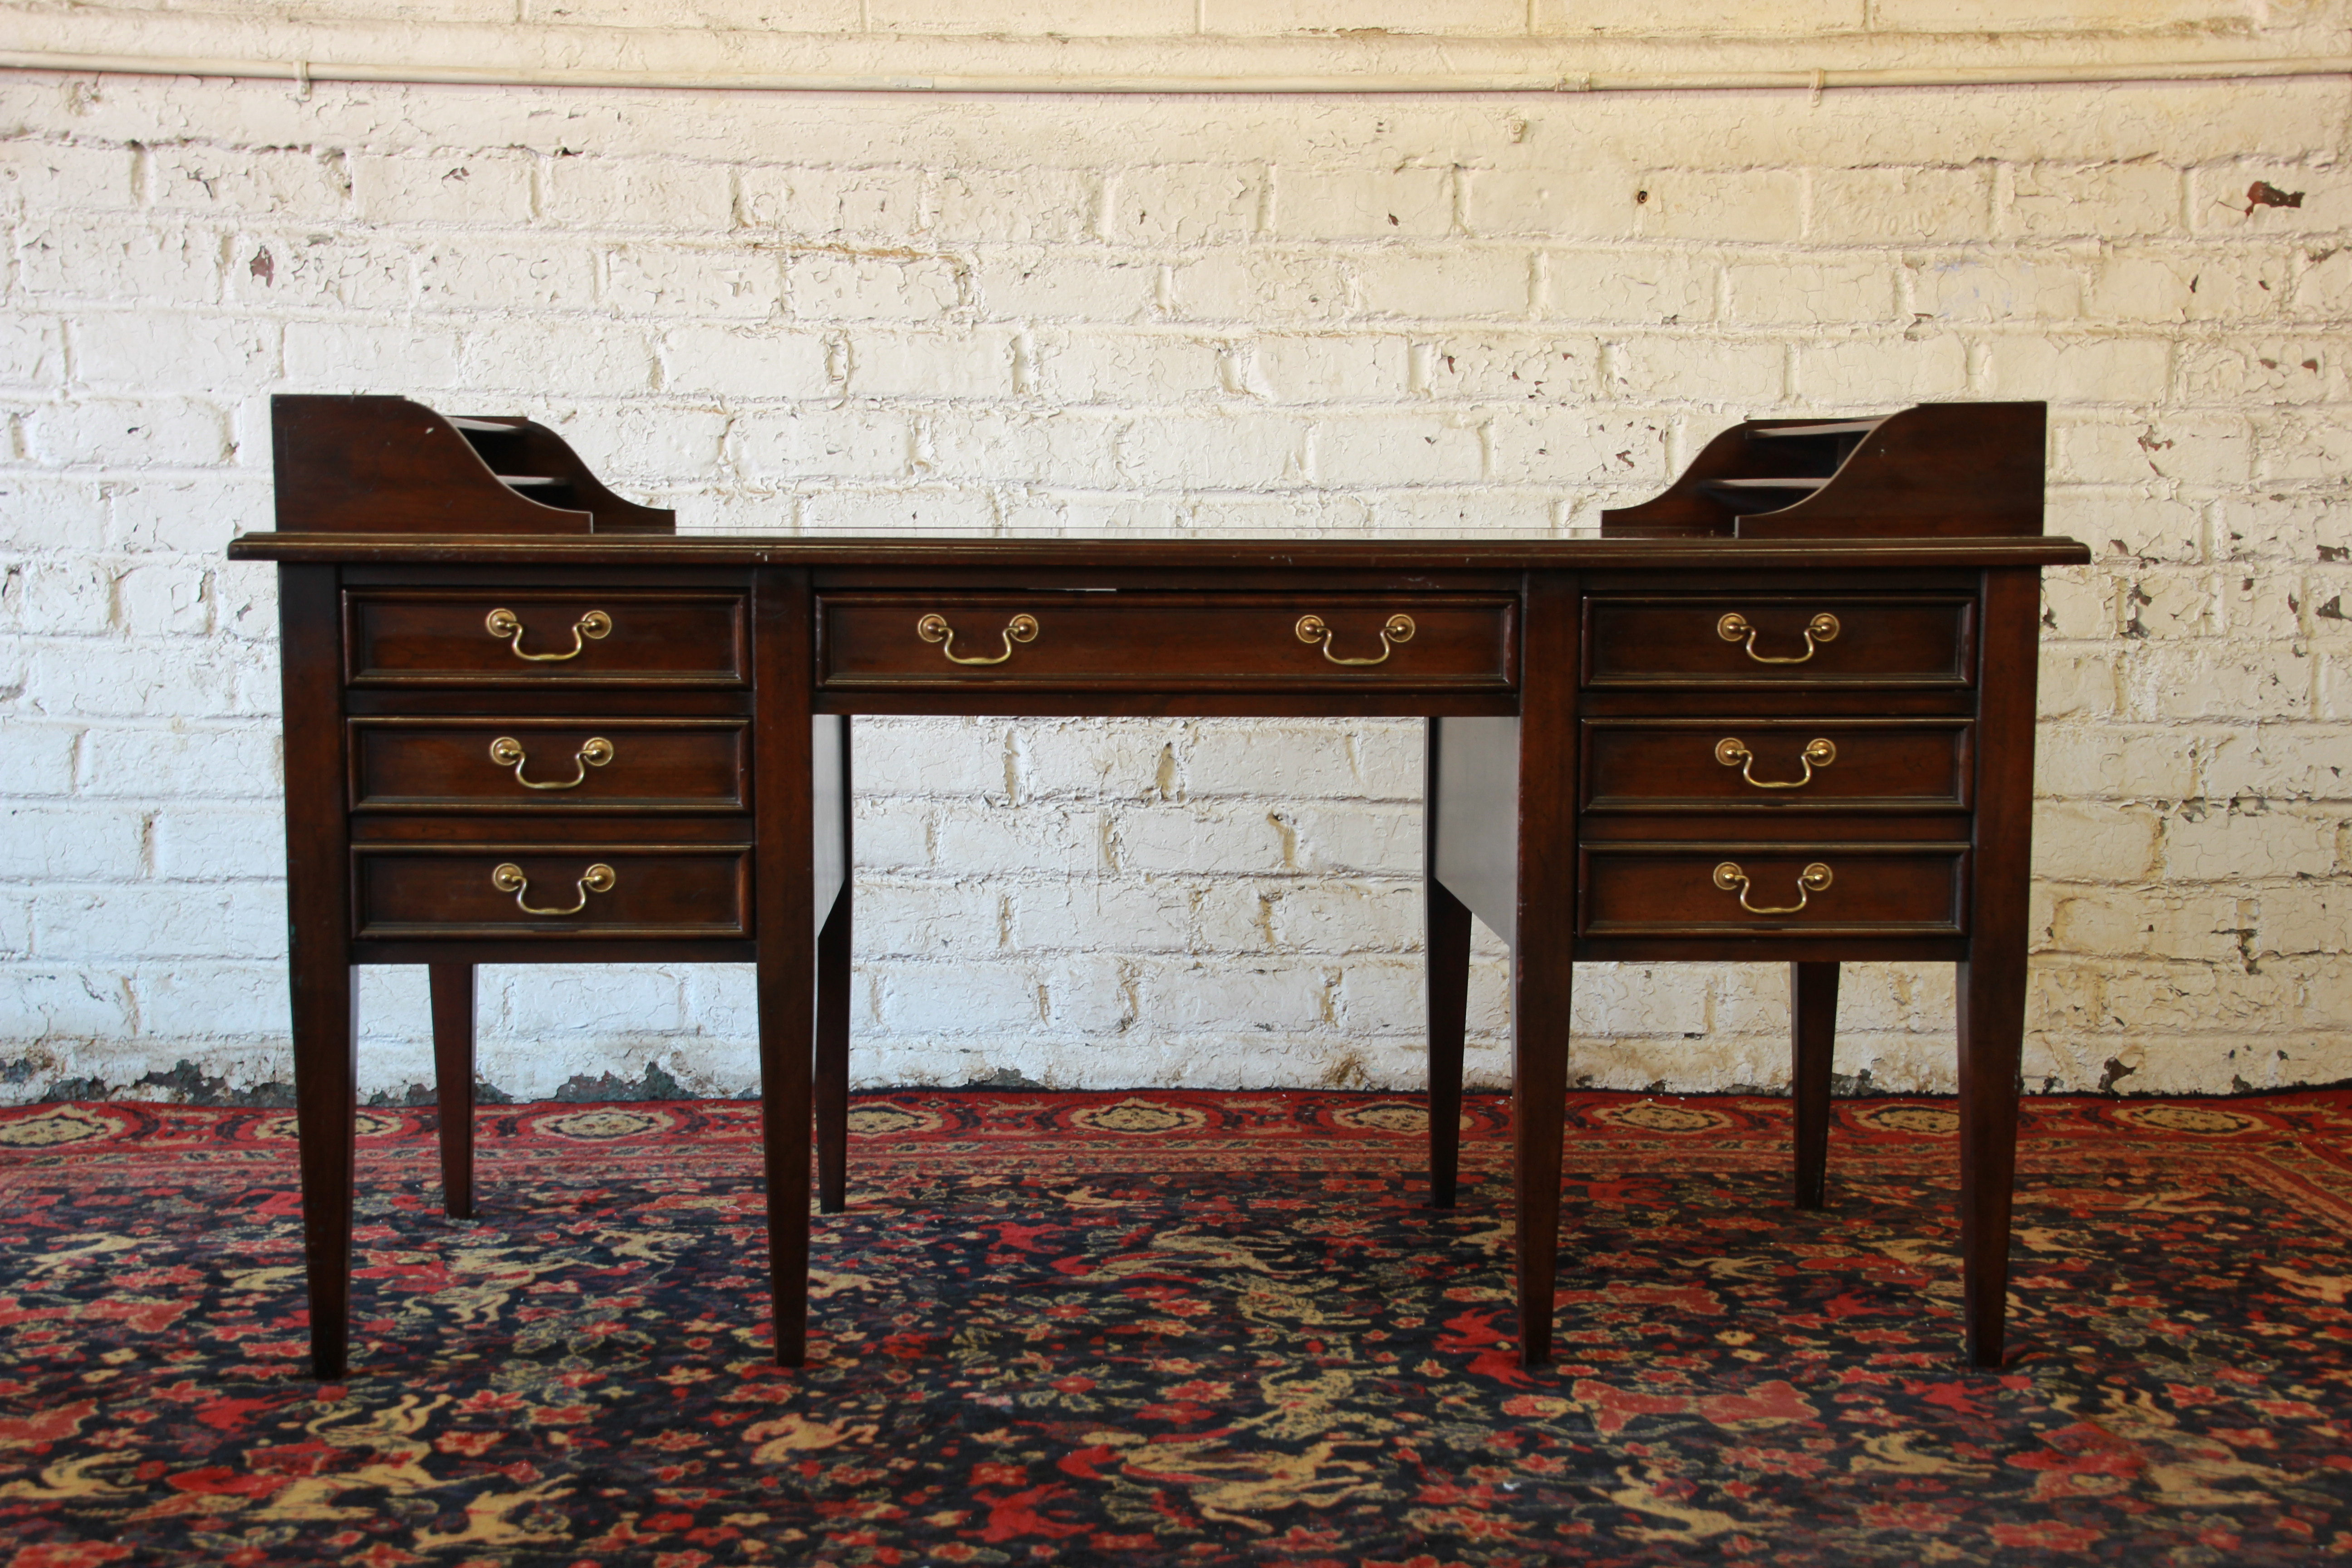 Excellent Mahogany Executive Desk By Sligh Furniture Of Holland, MI. This  Desk Is Made